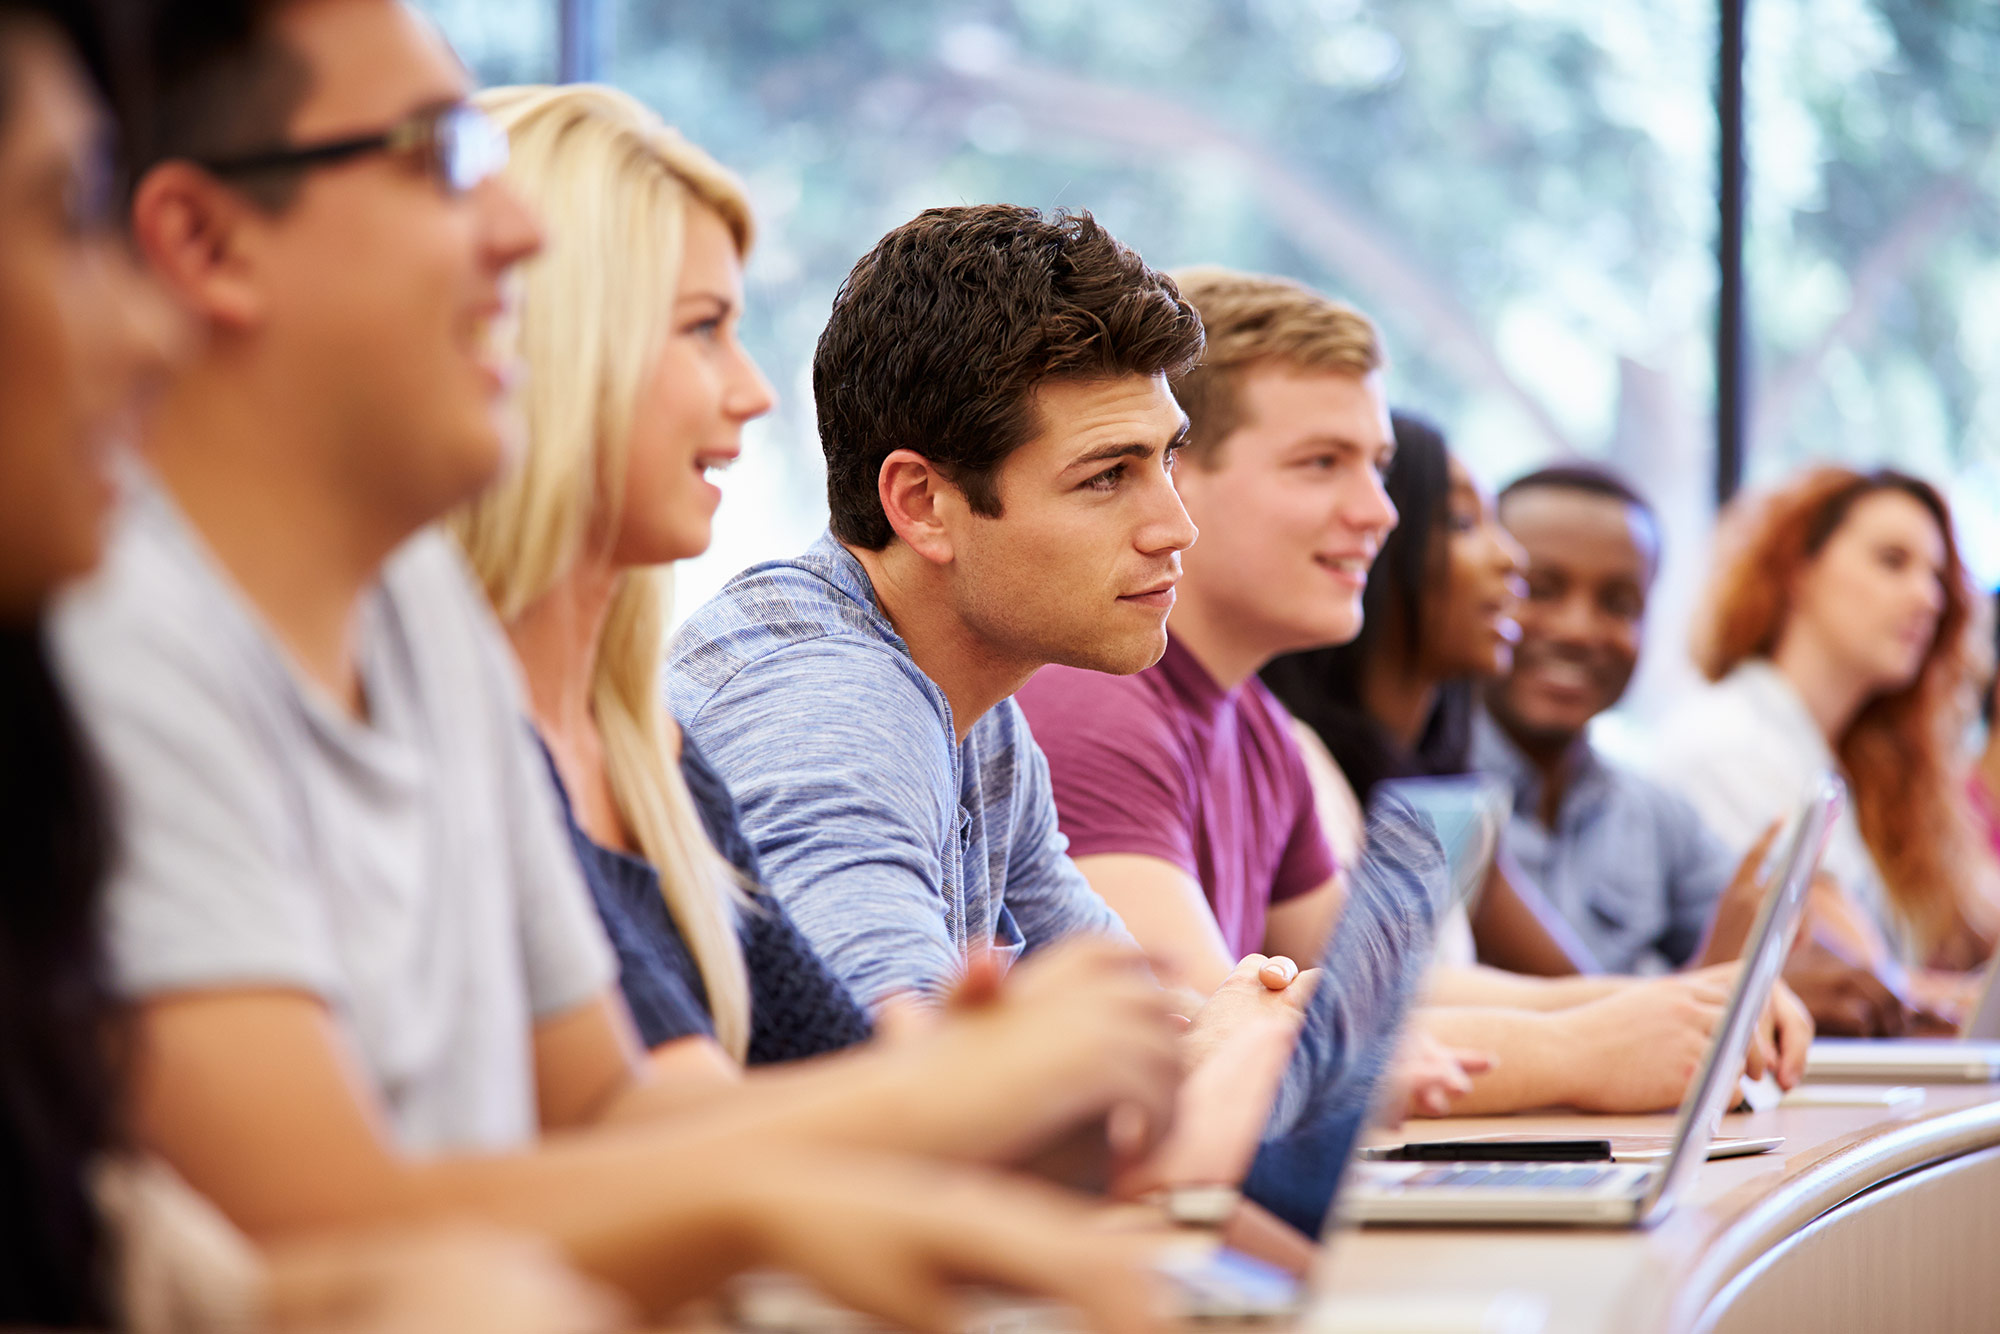 A Global MBA for the next generation of business leaders